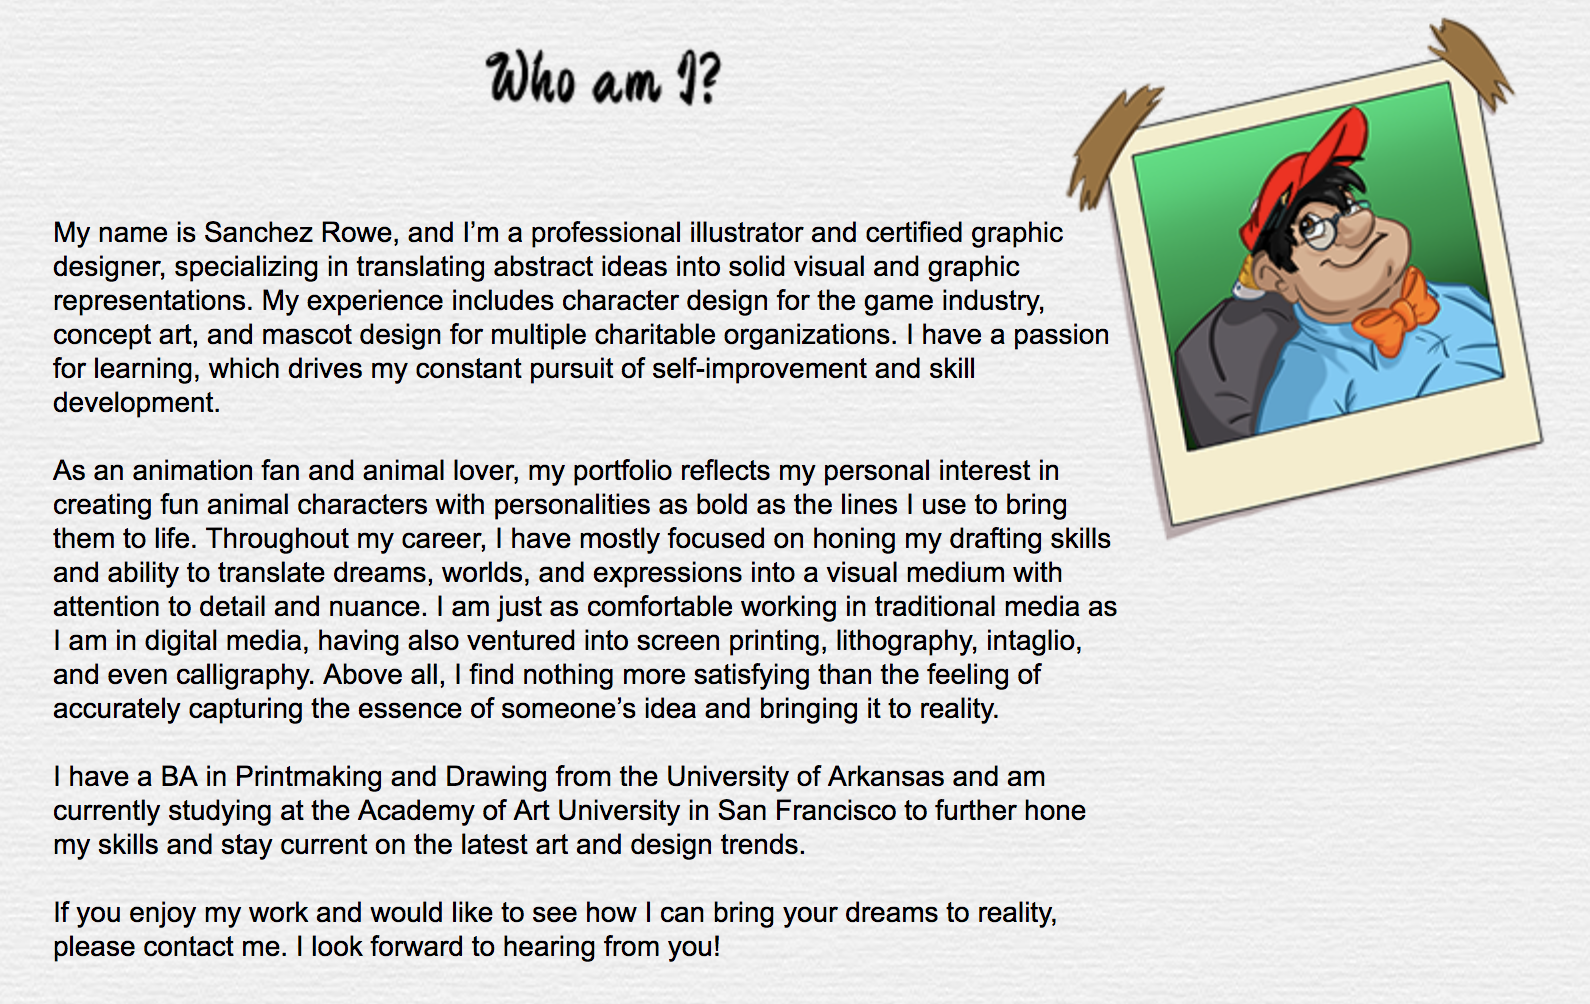 (Click image to enlarge.) And here's his bio after I worked my magic, borrowing a bit from his resume.